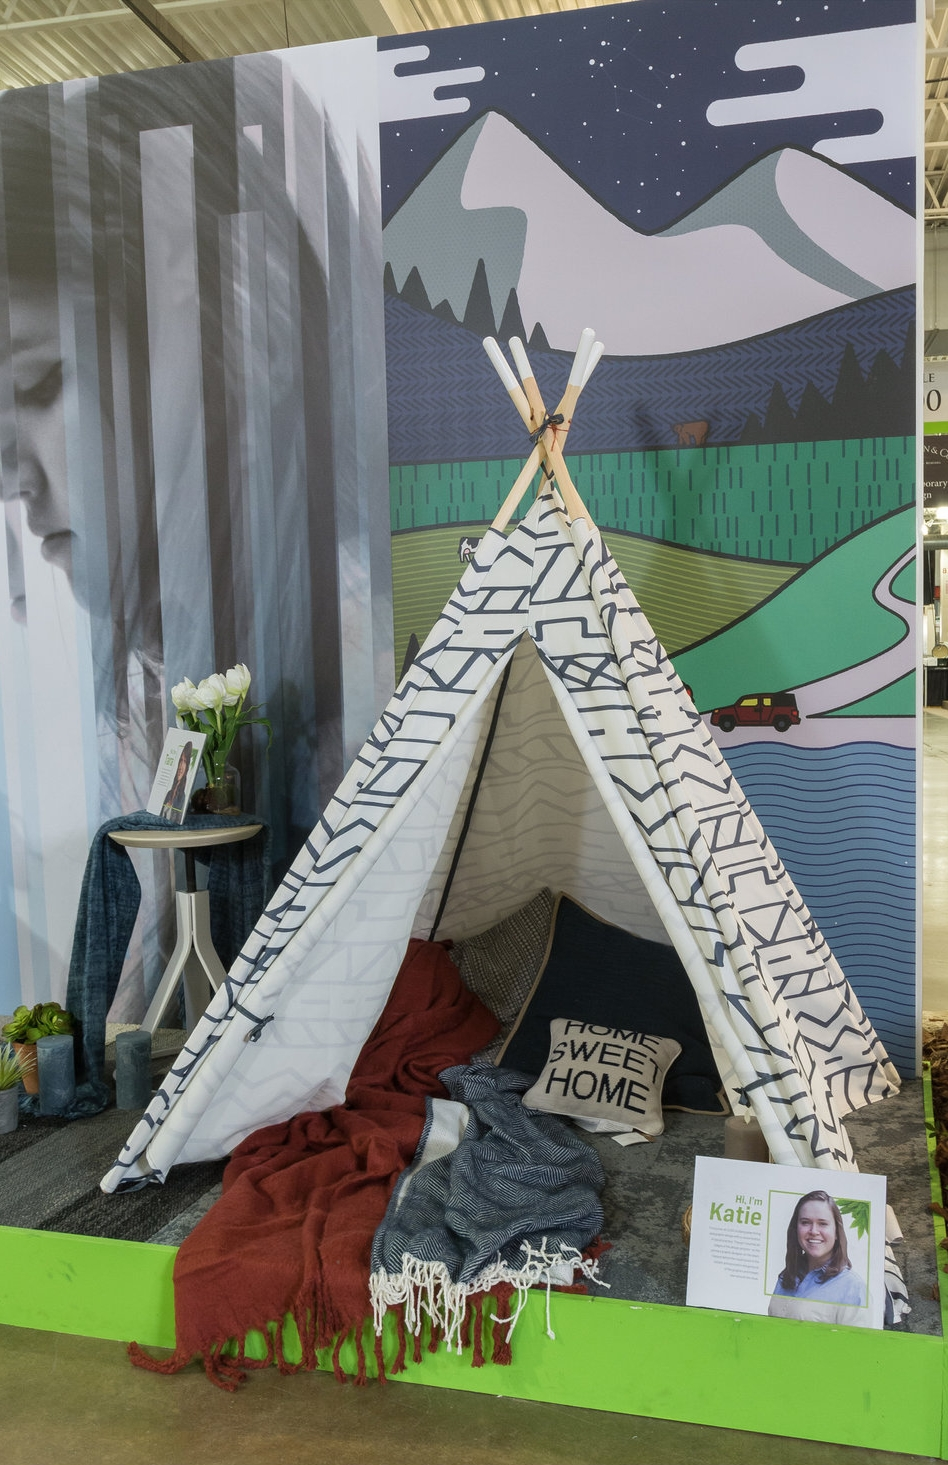 - Each student had a space to create a wallcovering and furniture arrangement that displayed to create a